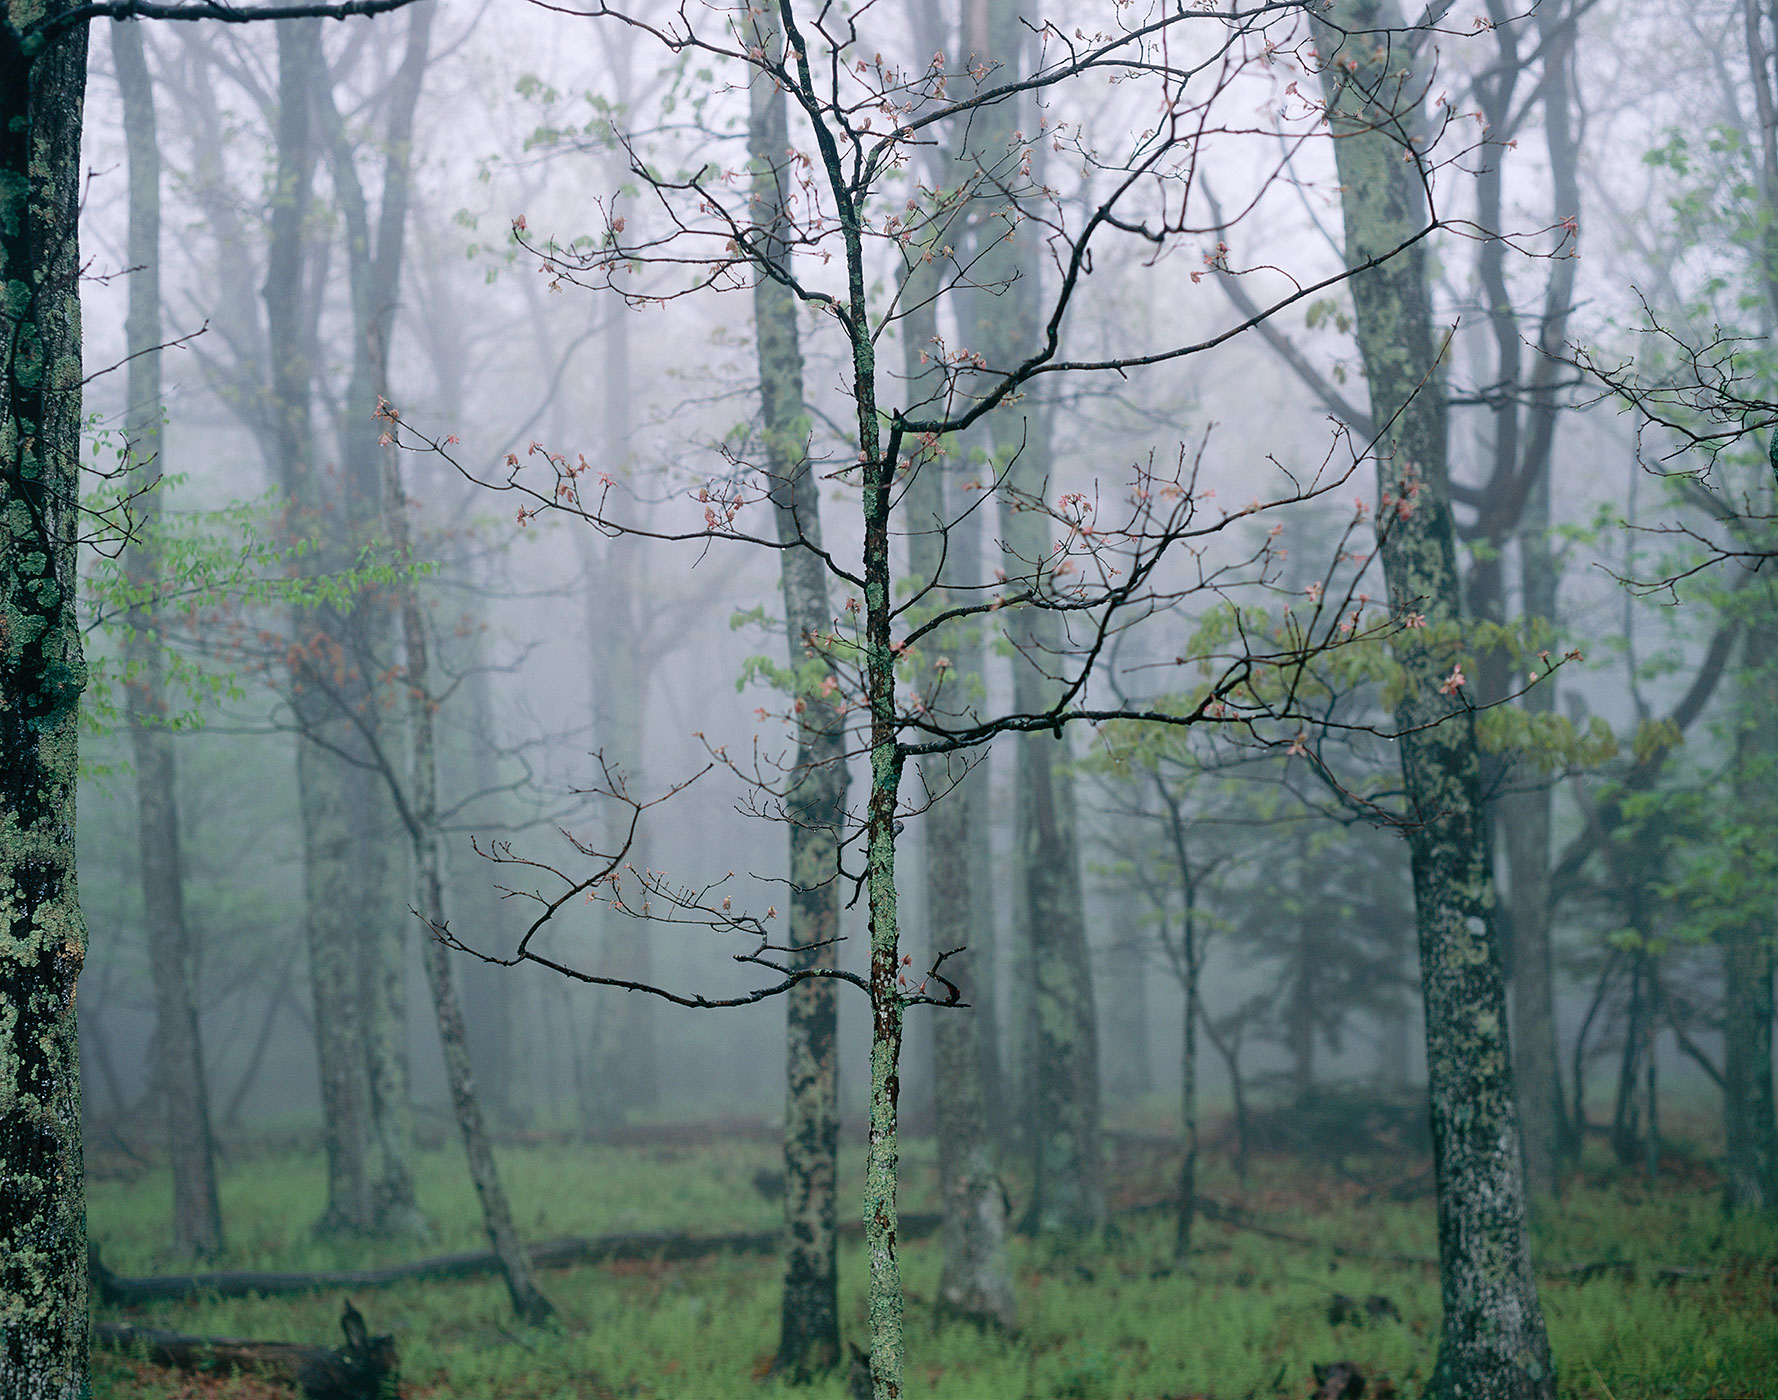 1350 Sapling in Fog, Shenandoah National Park, Virginia